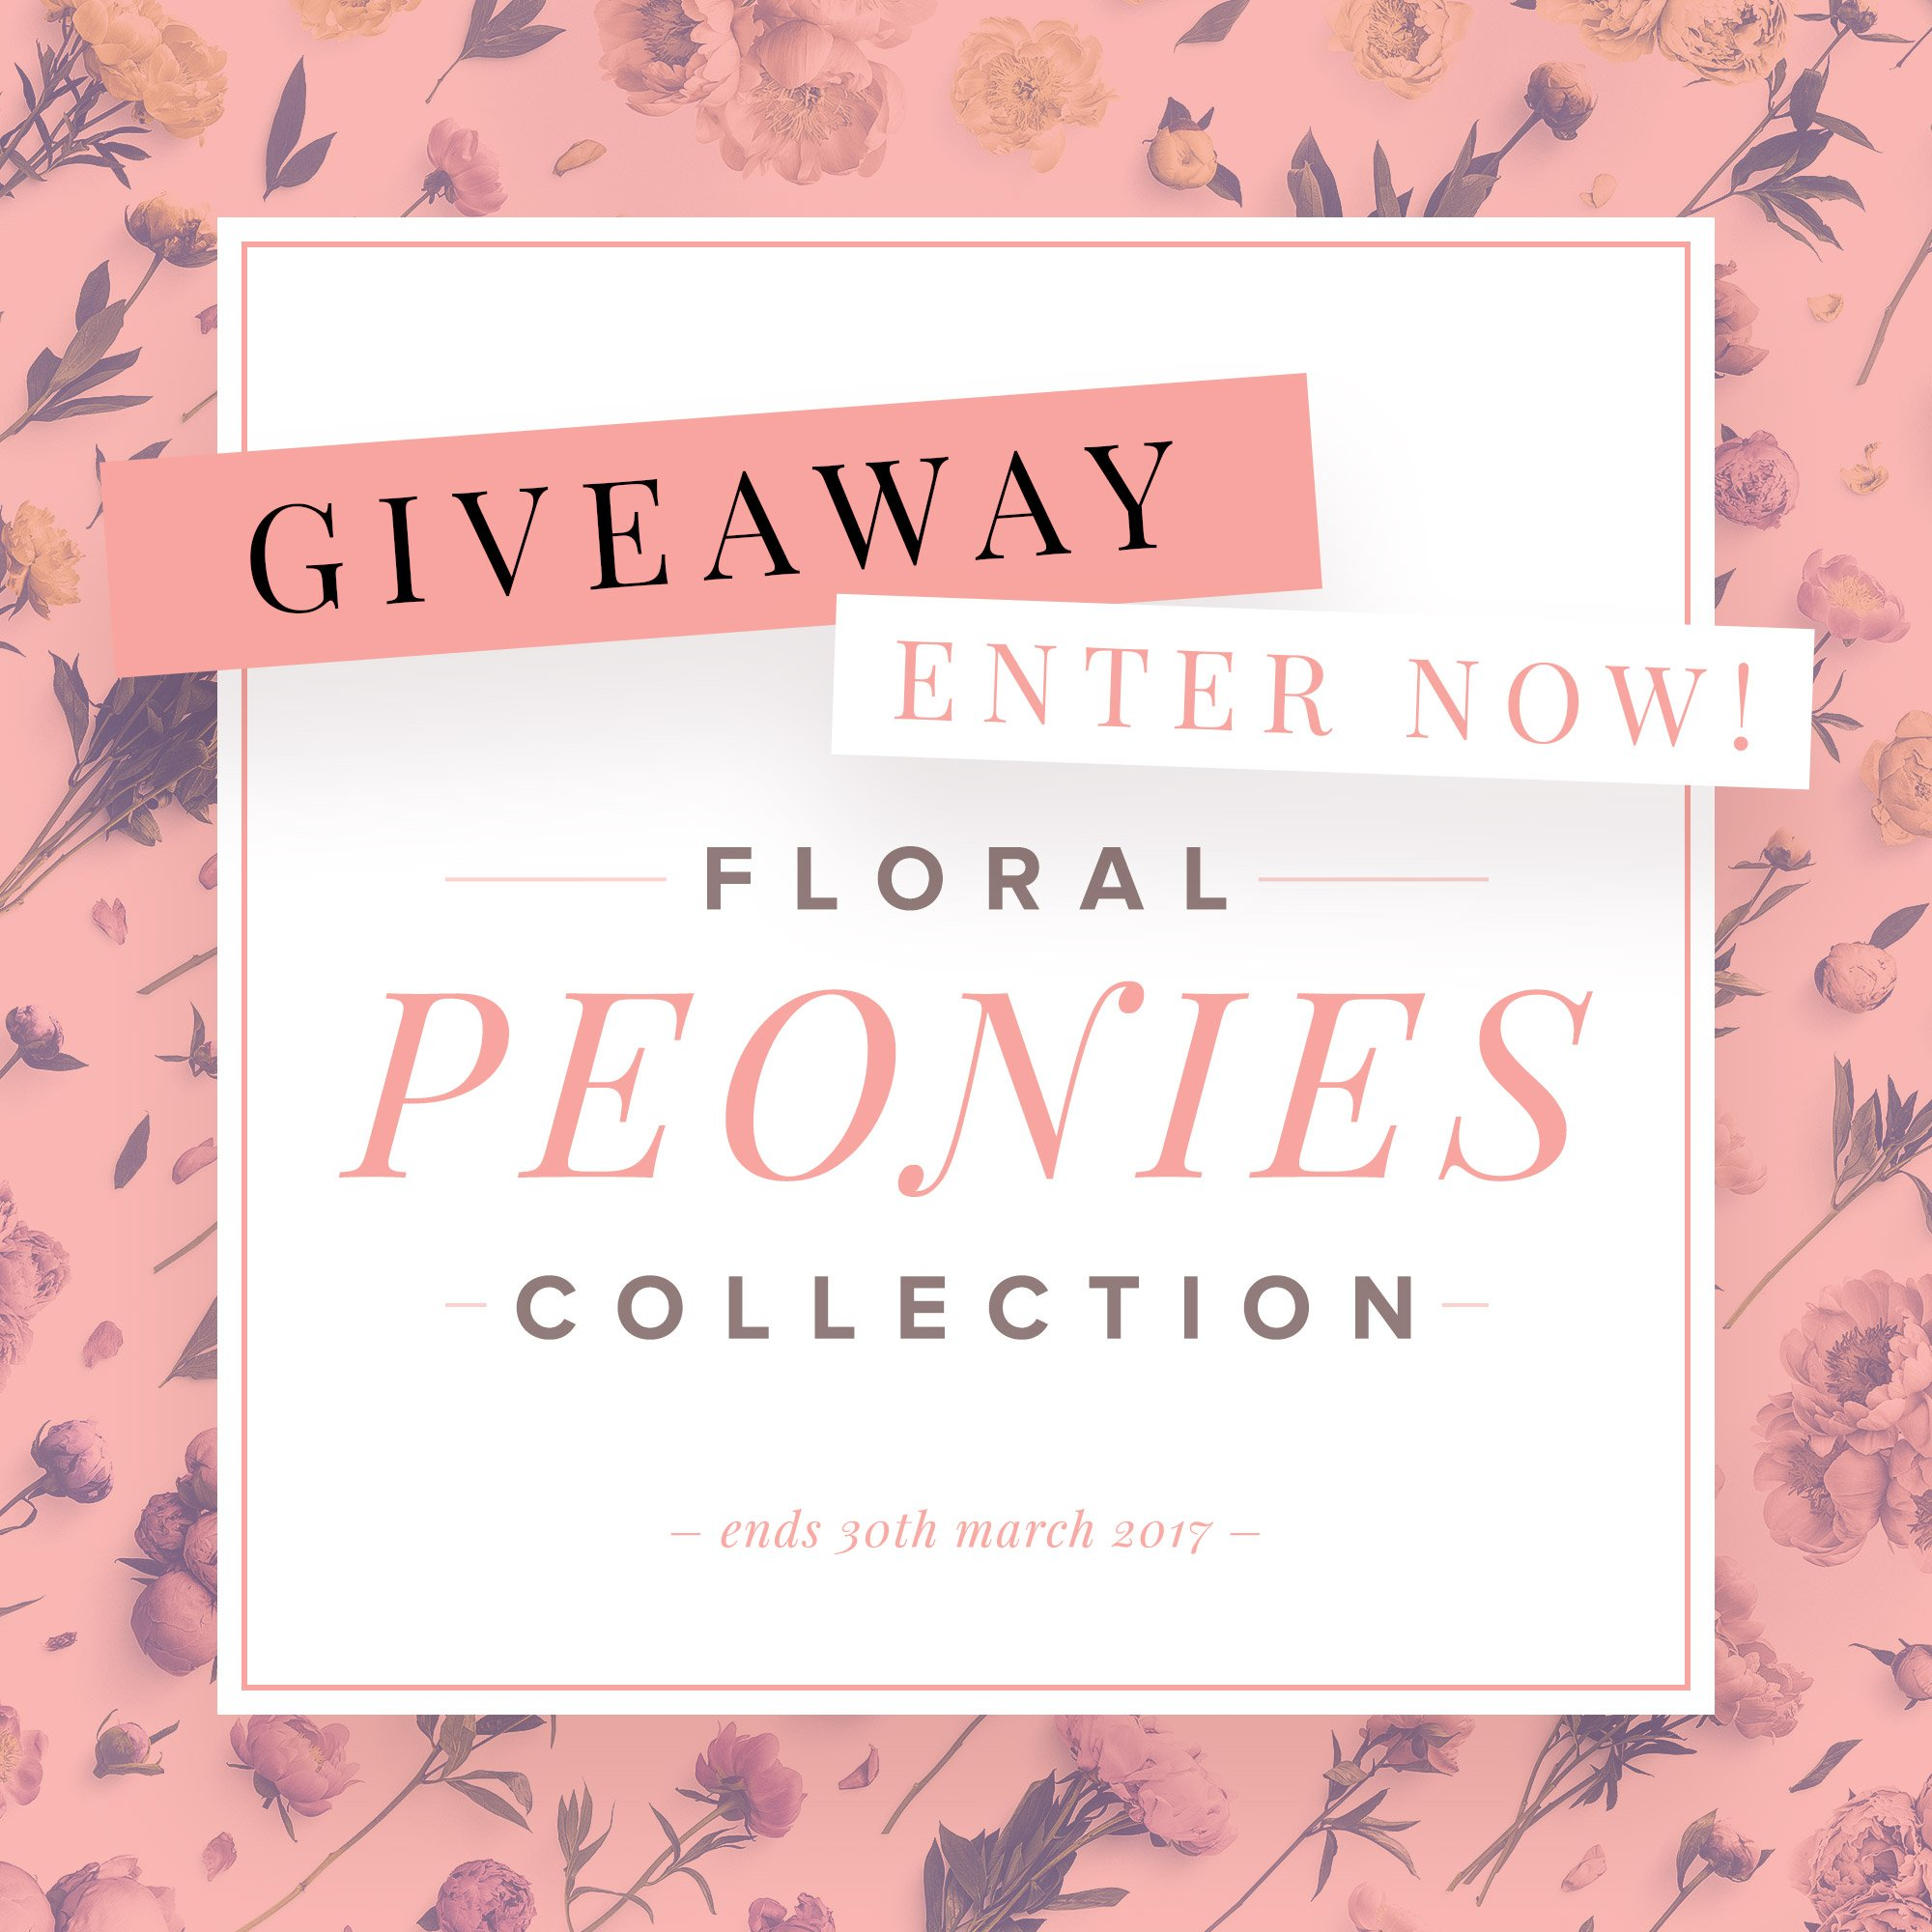 giveaway floral peonies collection customscene